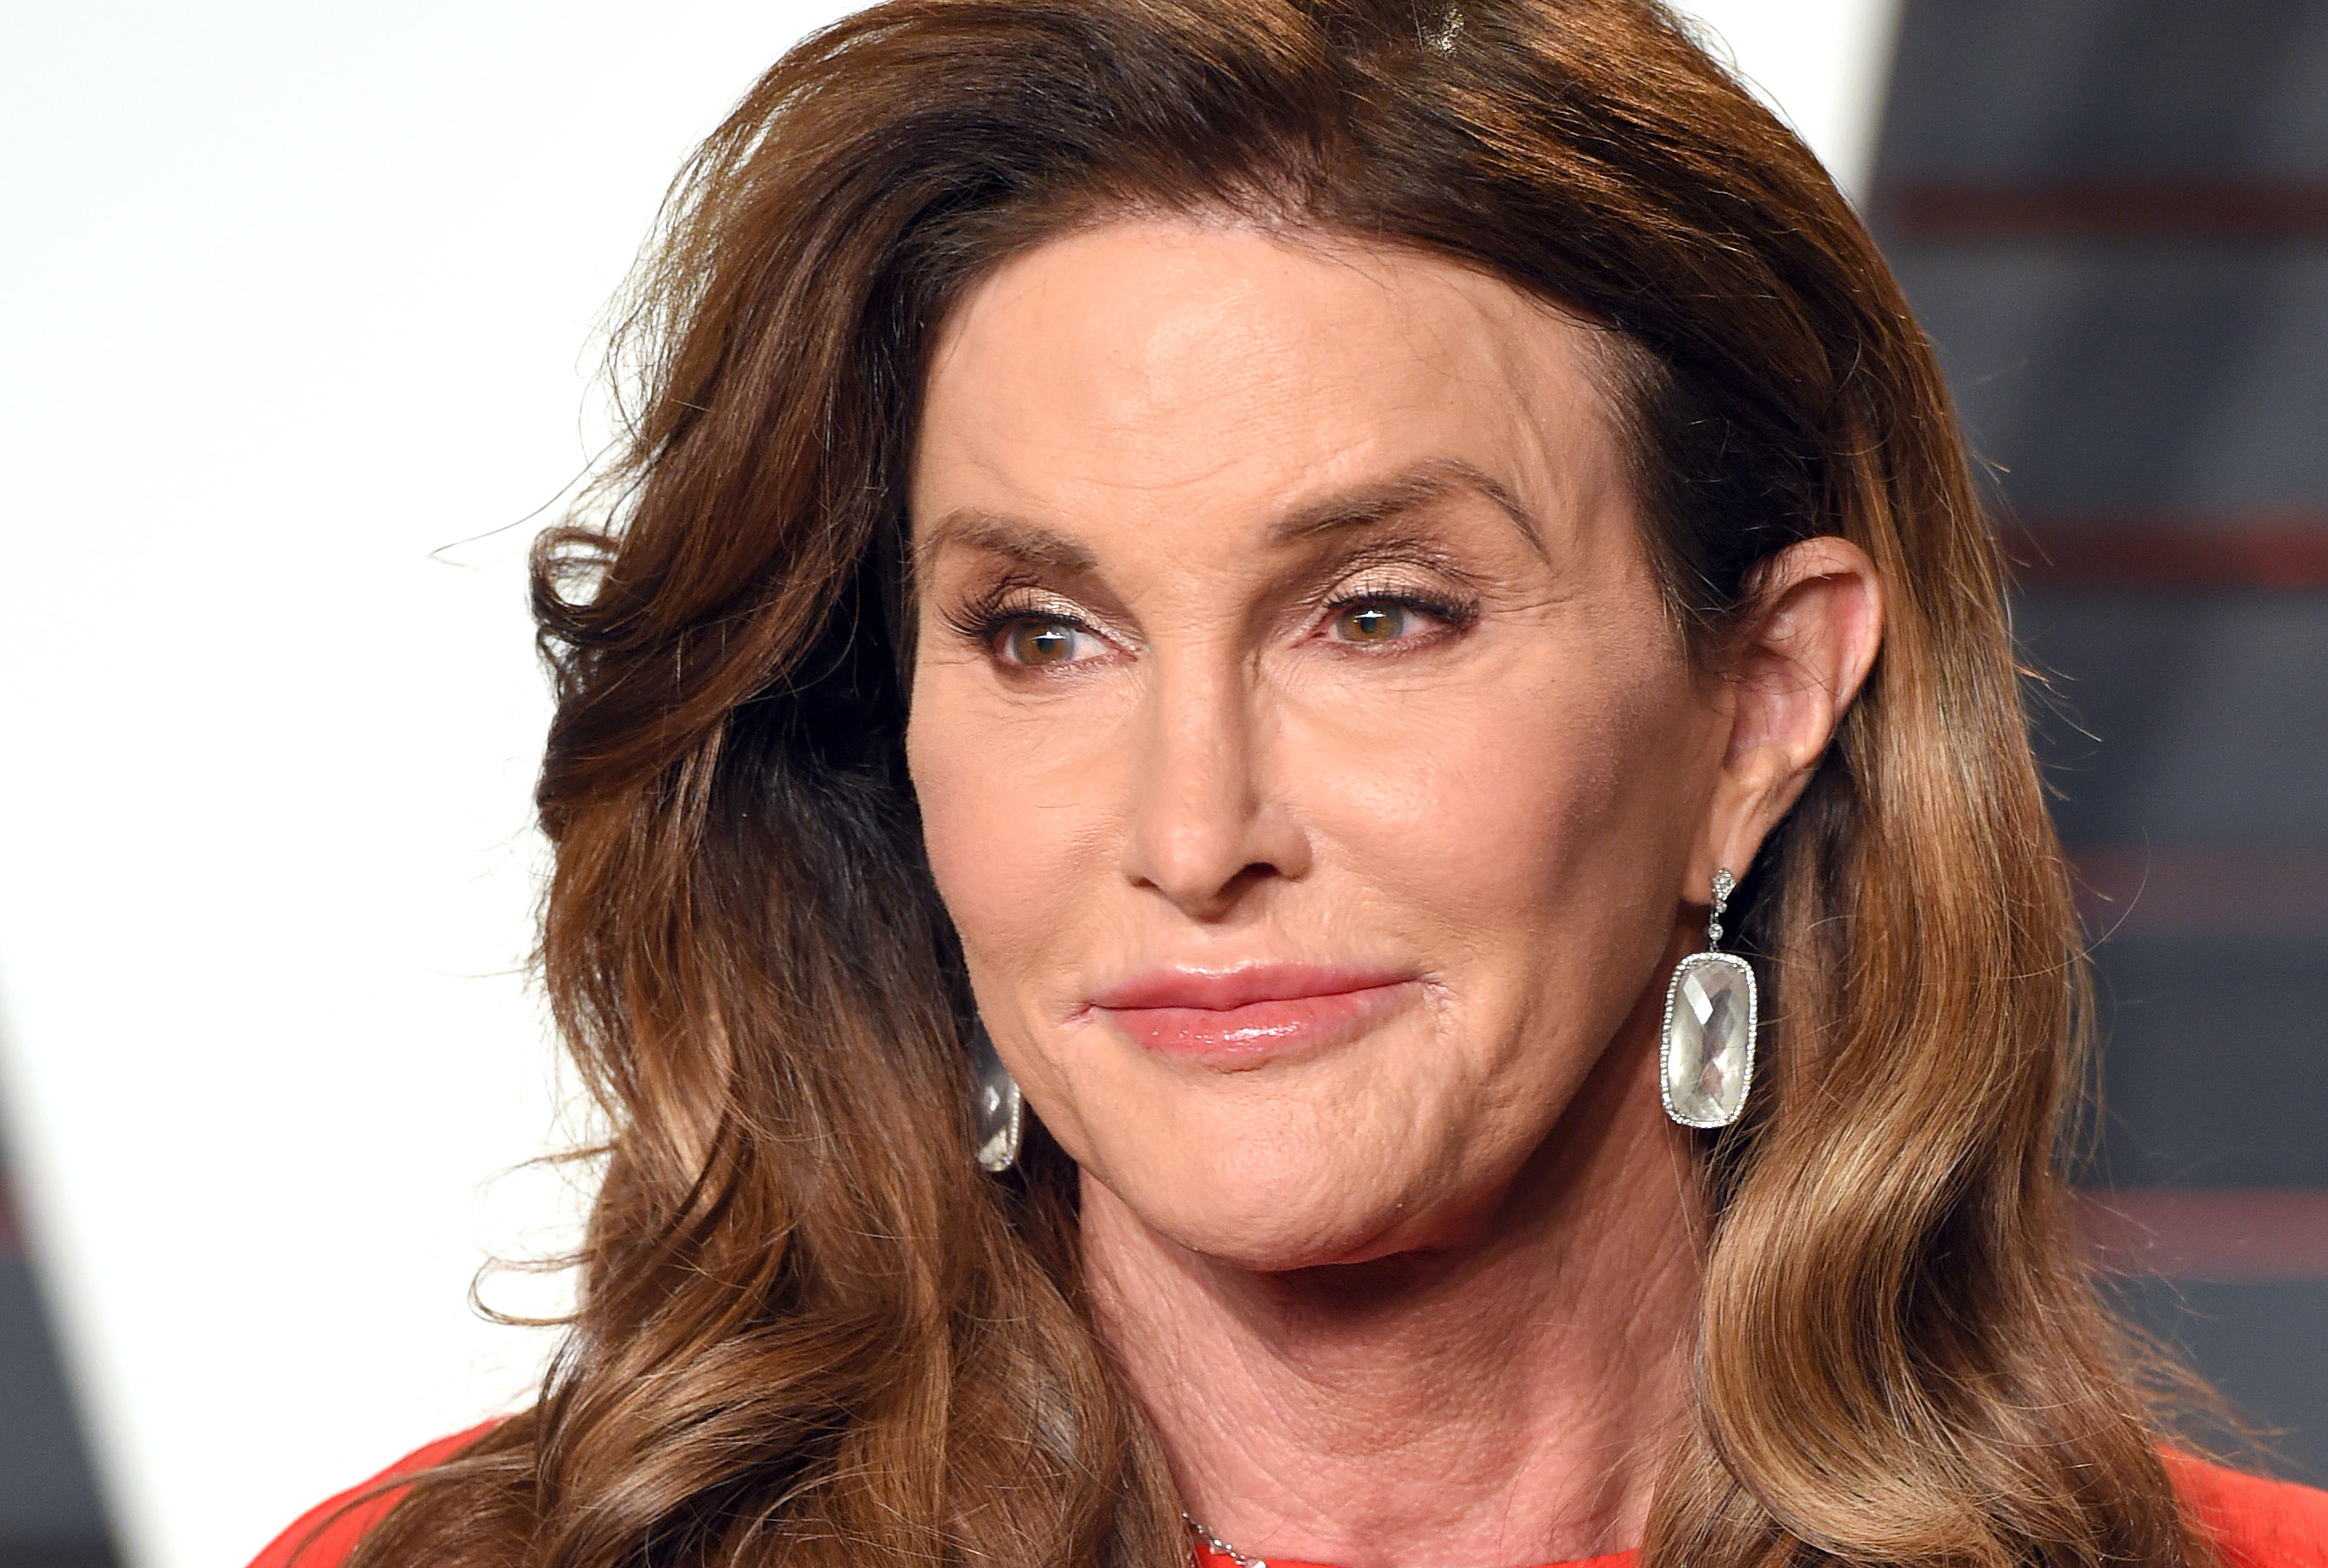 Caitlyn Jenner attends the 2016 Vanity Fair Oscar party on Feb. 28, in Beverly Hills, Calif.